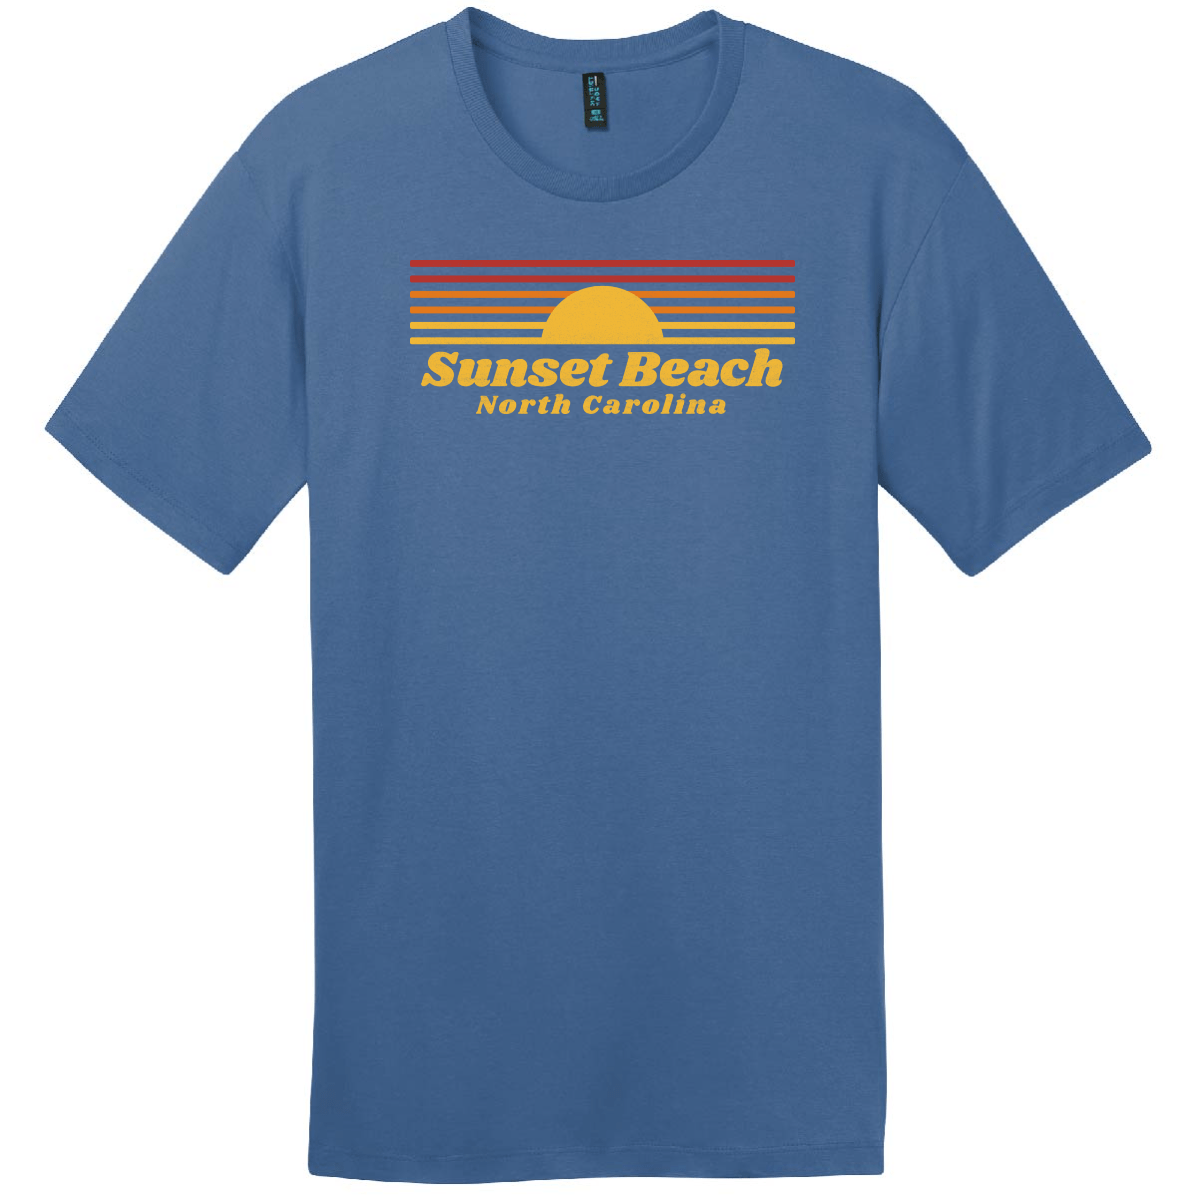 Sunset Beach North Carolina T-Shirt